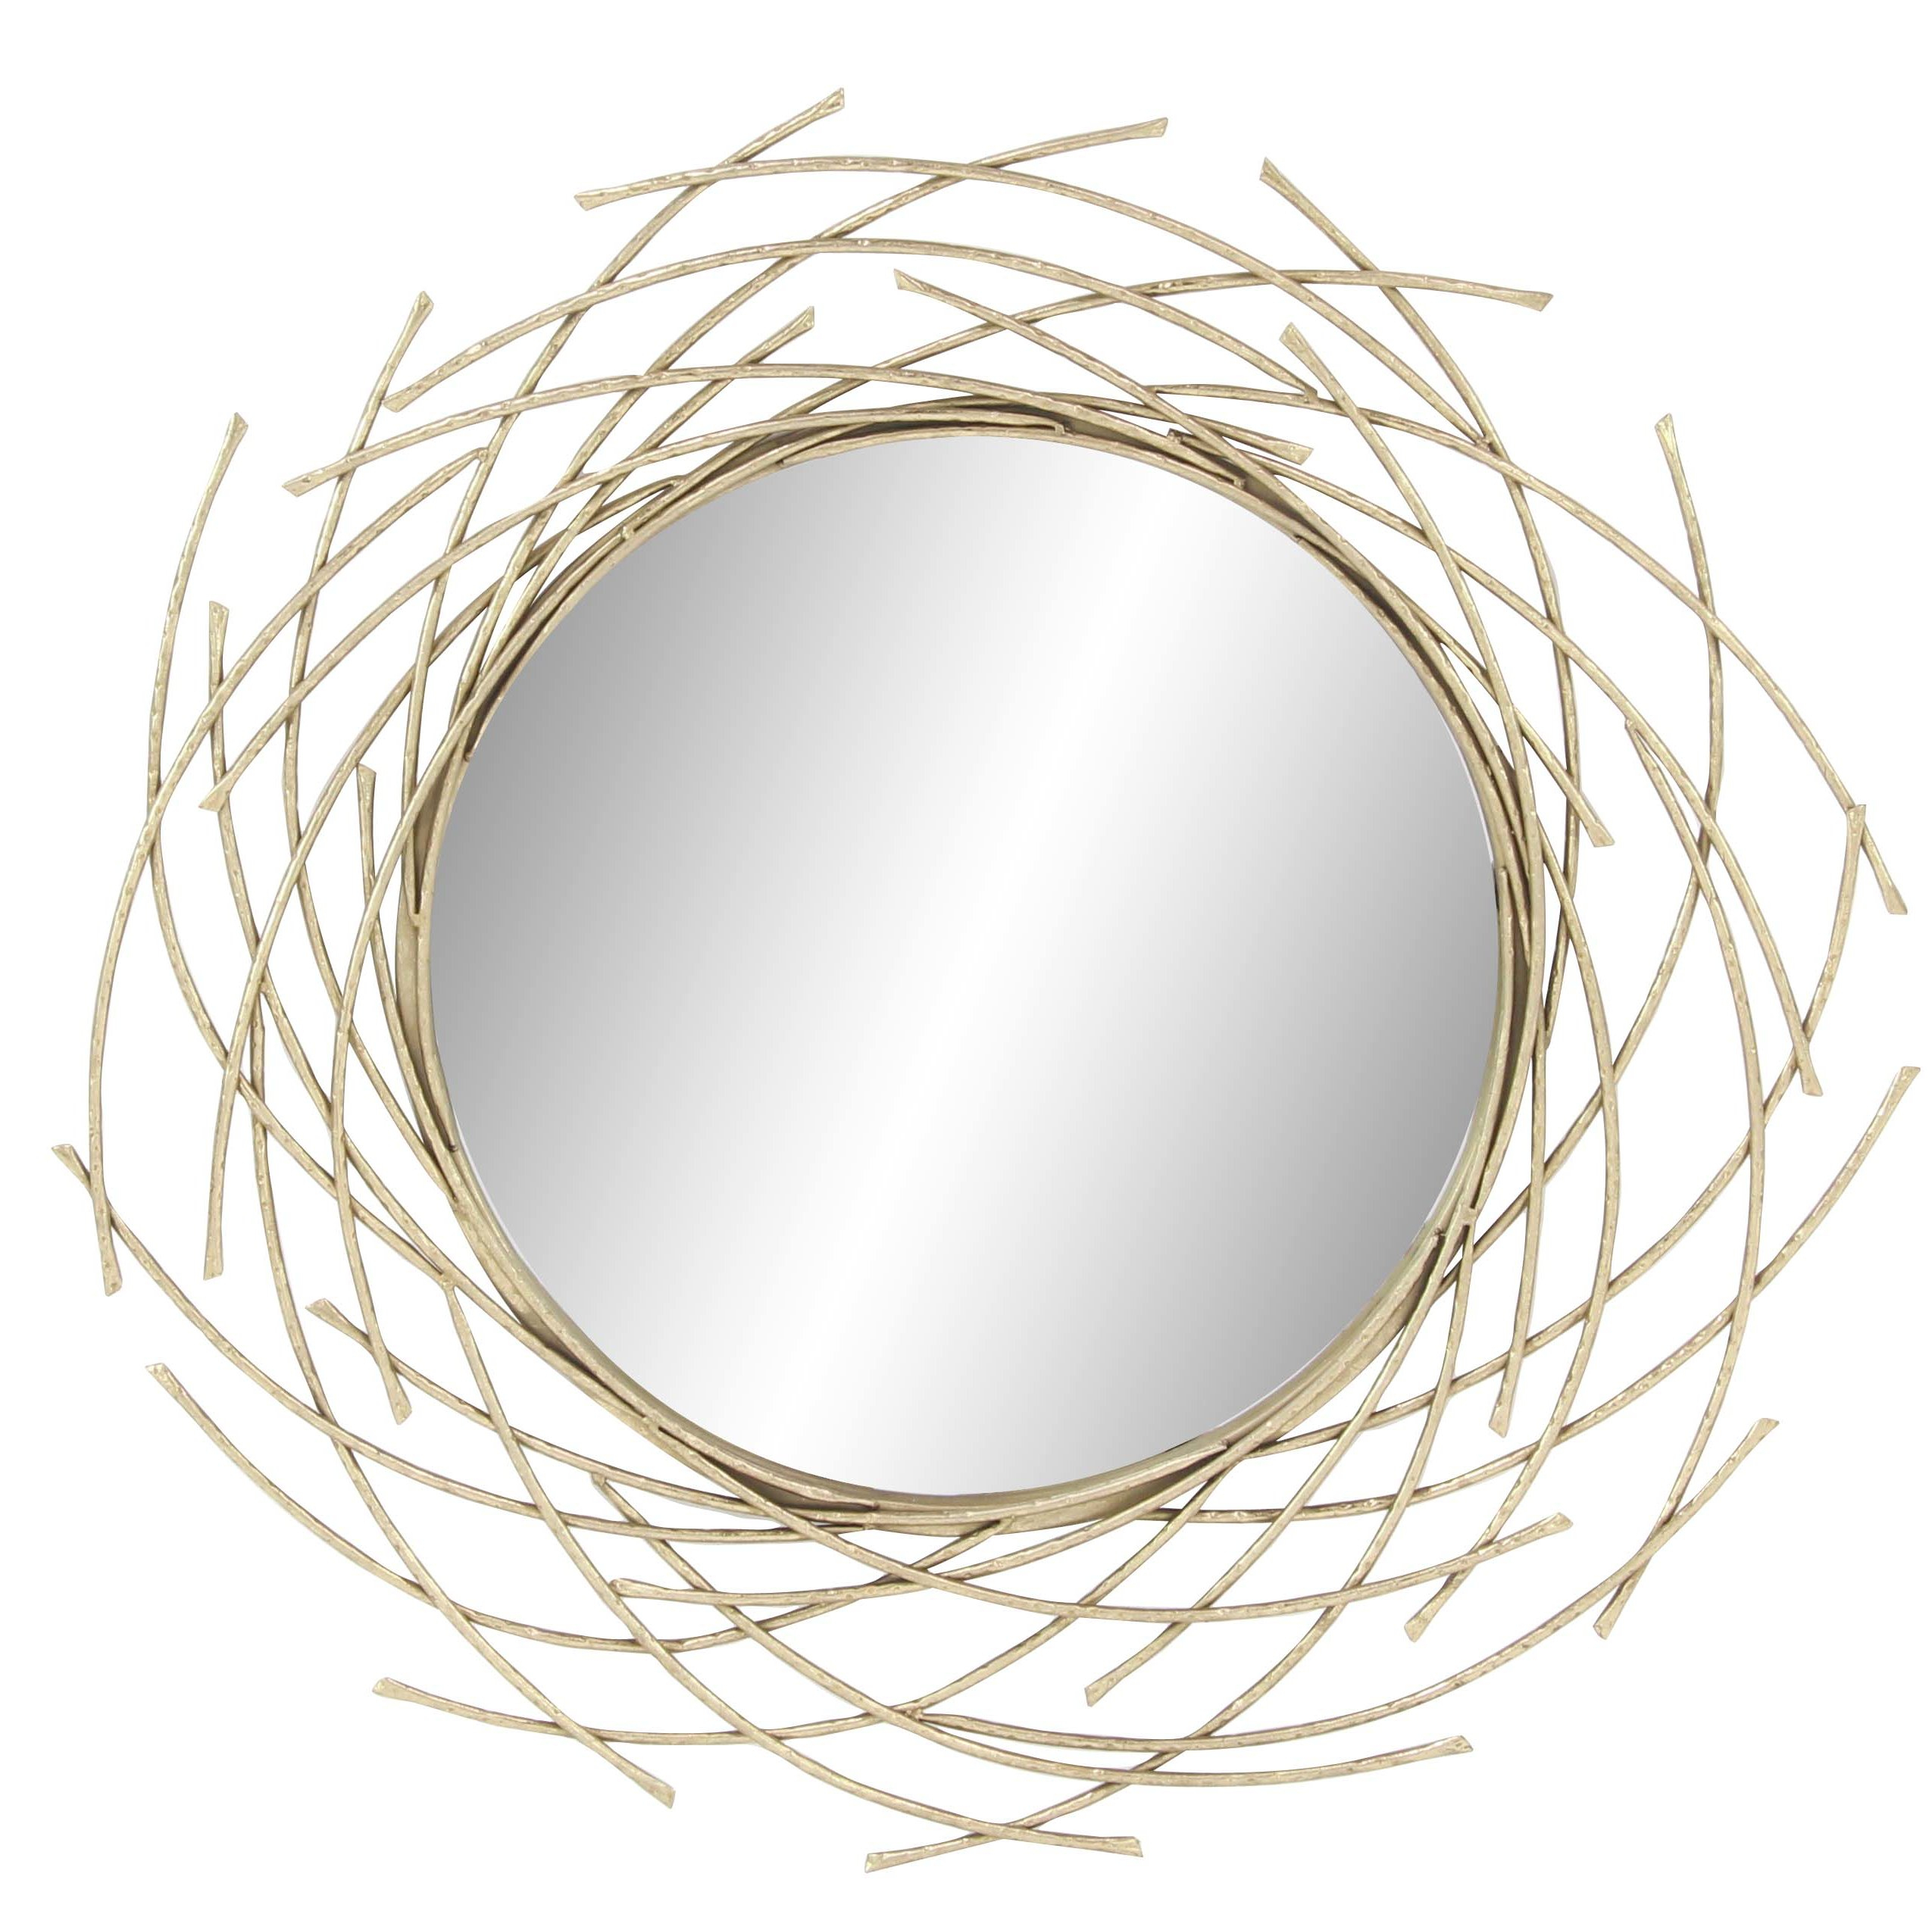 Modern Overlapping Arc Accent Mirror With Regard To Knott Modern & Contemporary Accent Mirrors (Image 18 of 20)